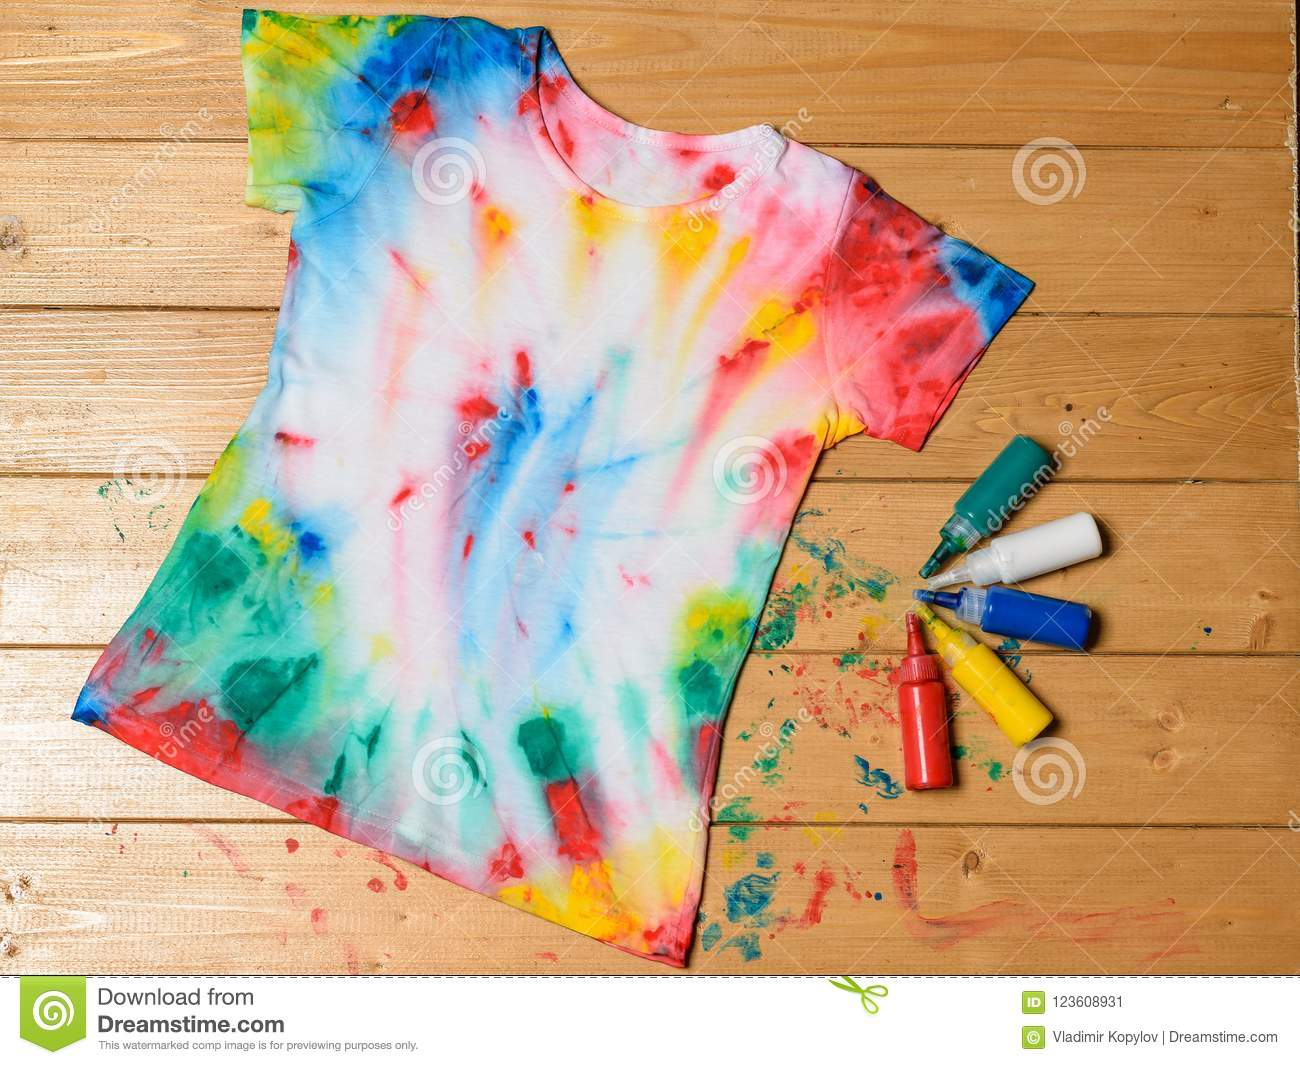 33c4e8b4 Tie dye style t-shirt and six cans of fabric paint on wooden rustic table